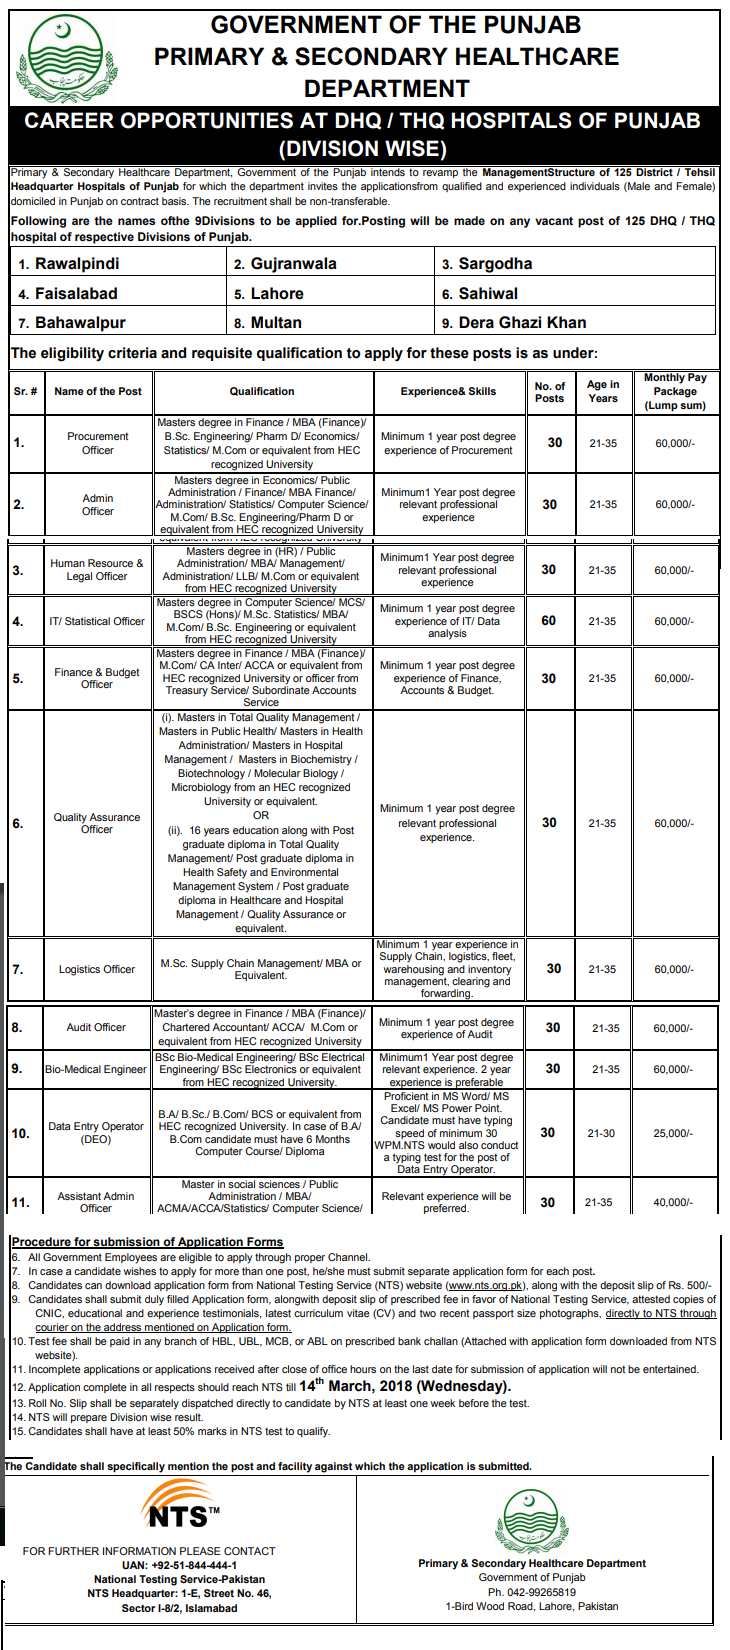 P & S Healthcare Management Structure Jobs NTS Roll Number Slips 201